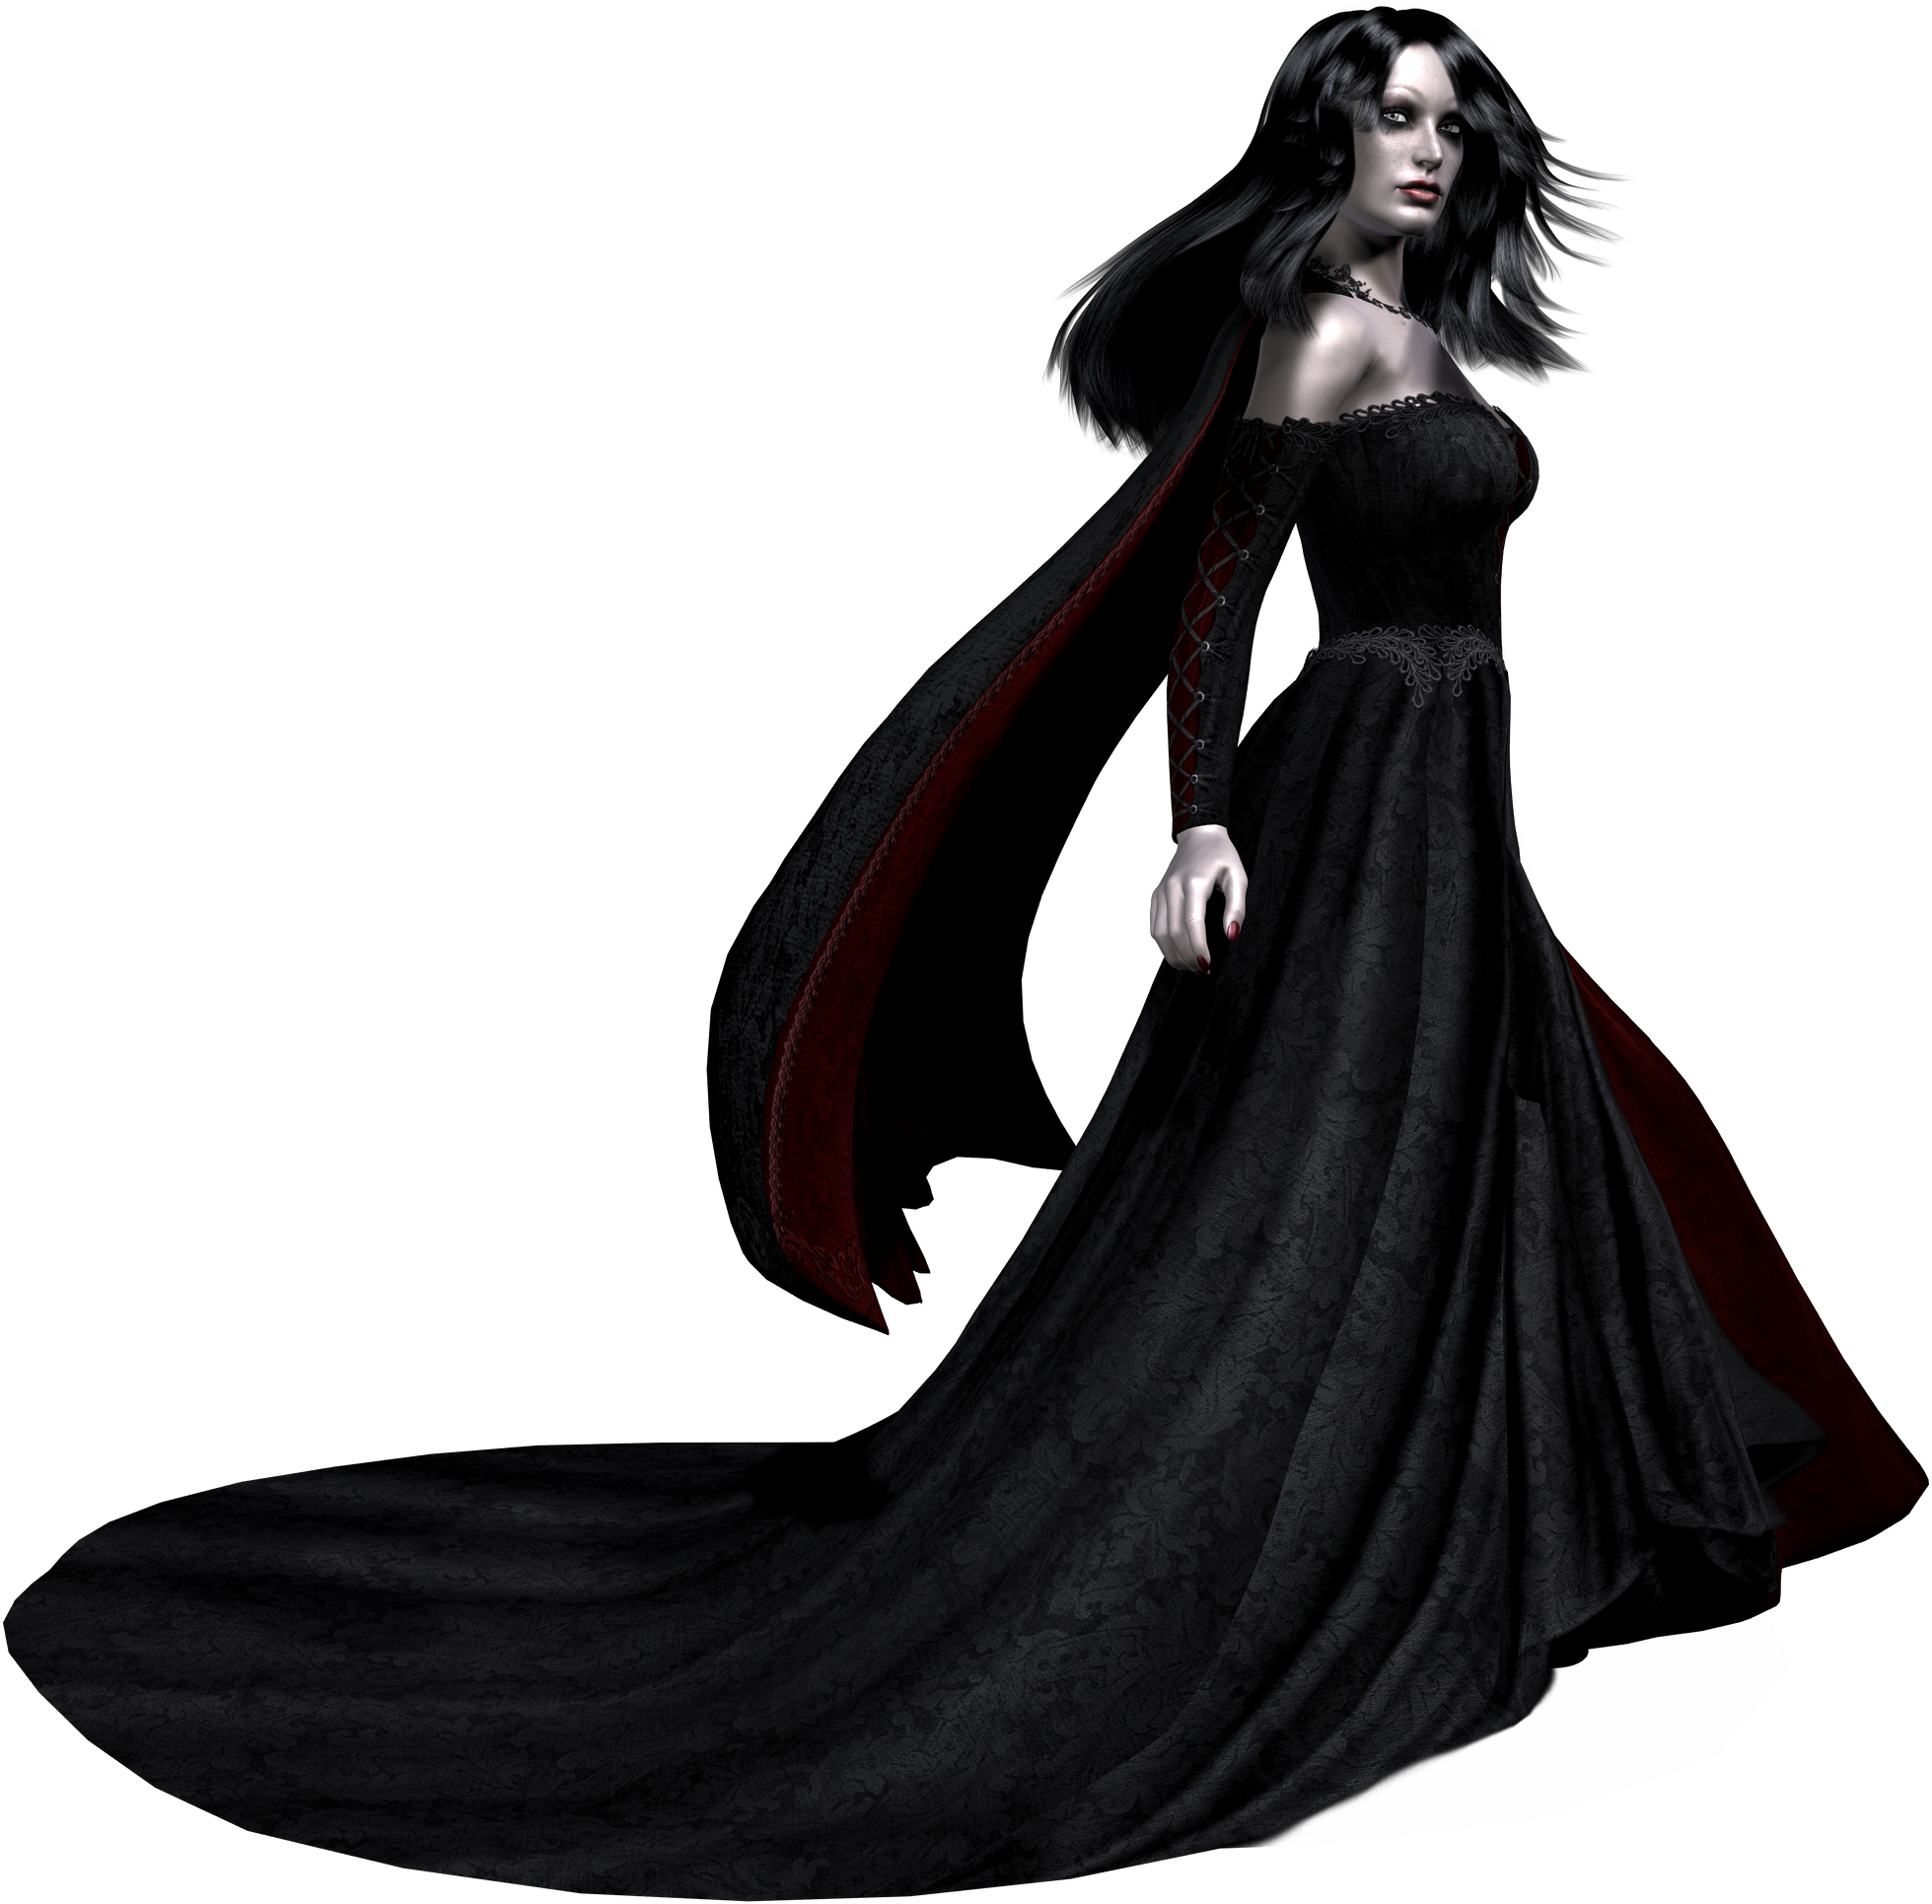 png Girl png images pluspng. Vampire transparent female